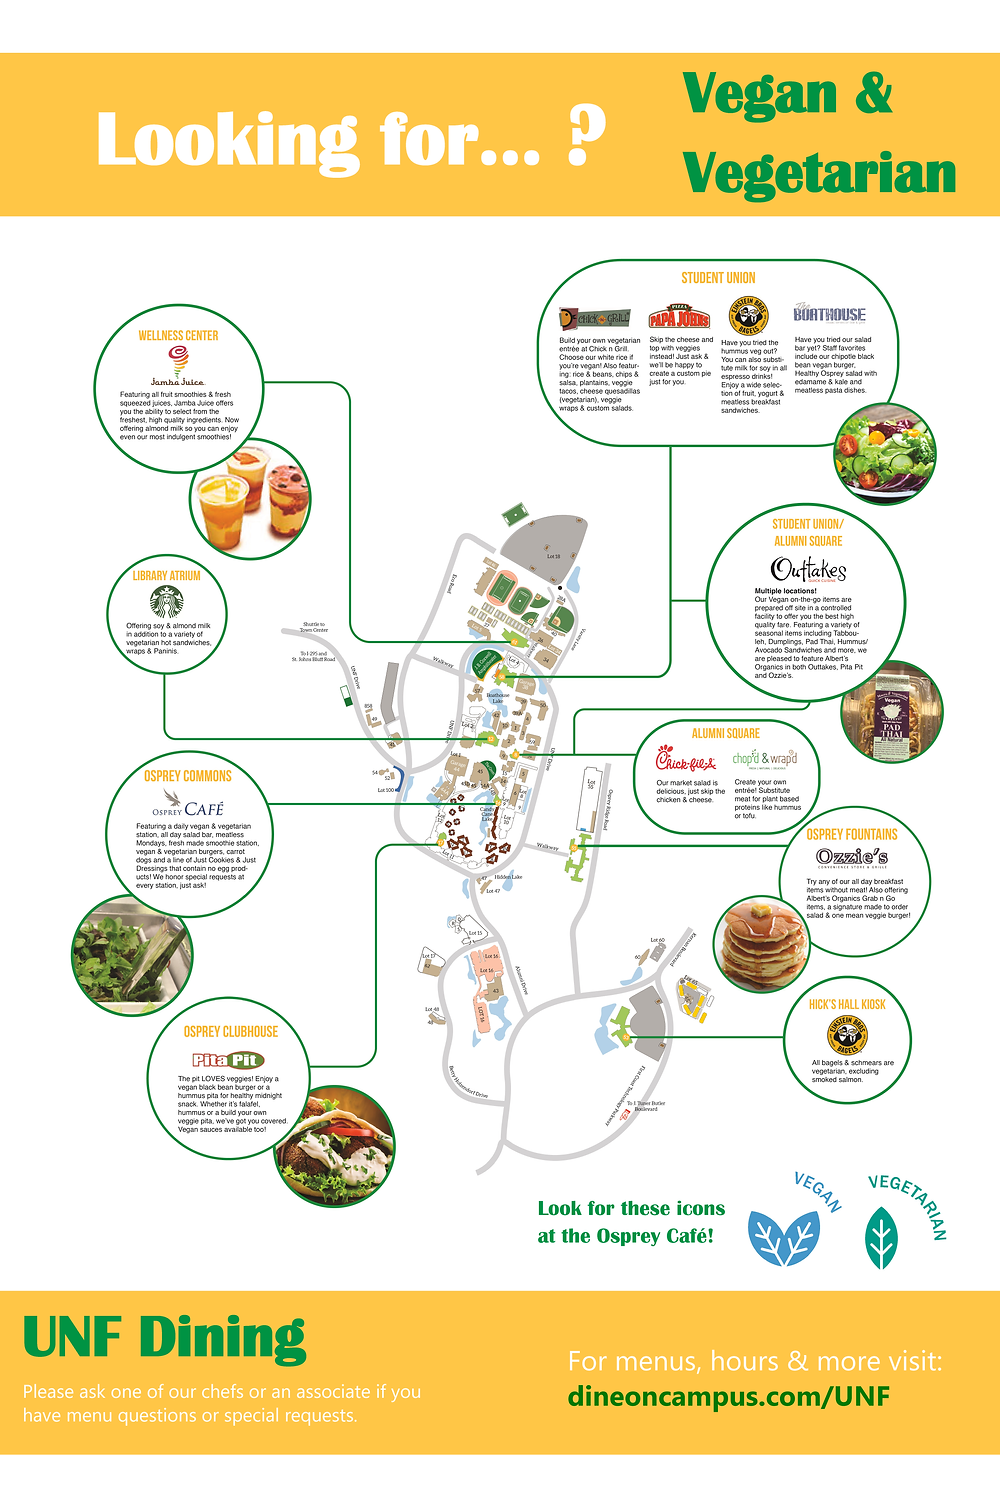 A map of the vegan and vegetarian options around UNF campus.